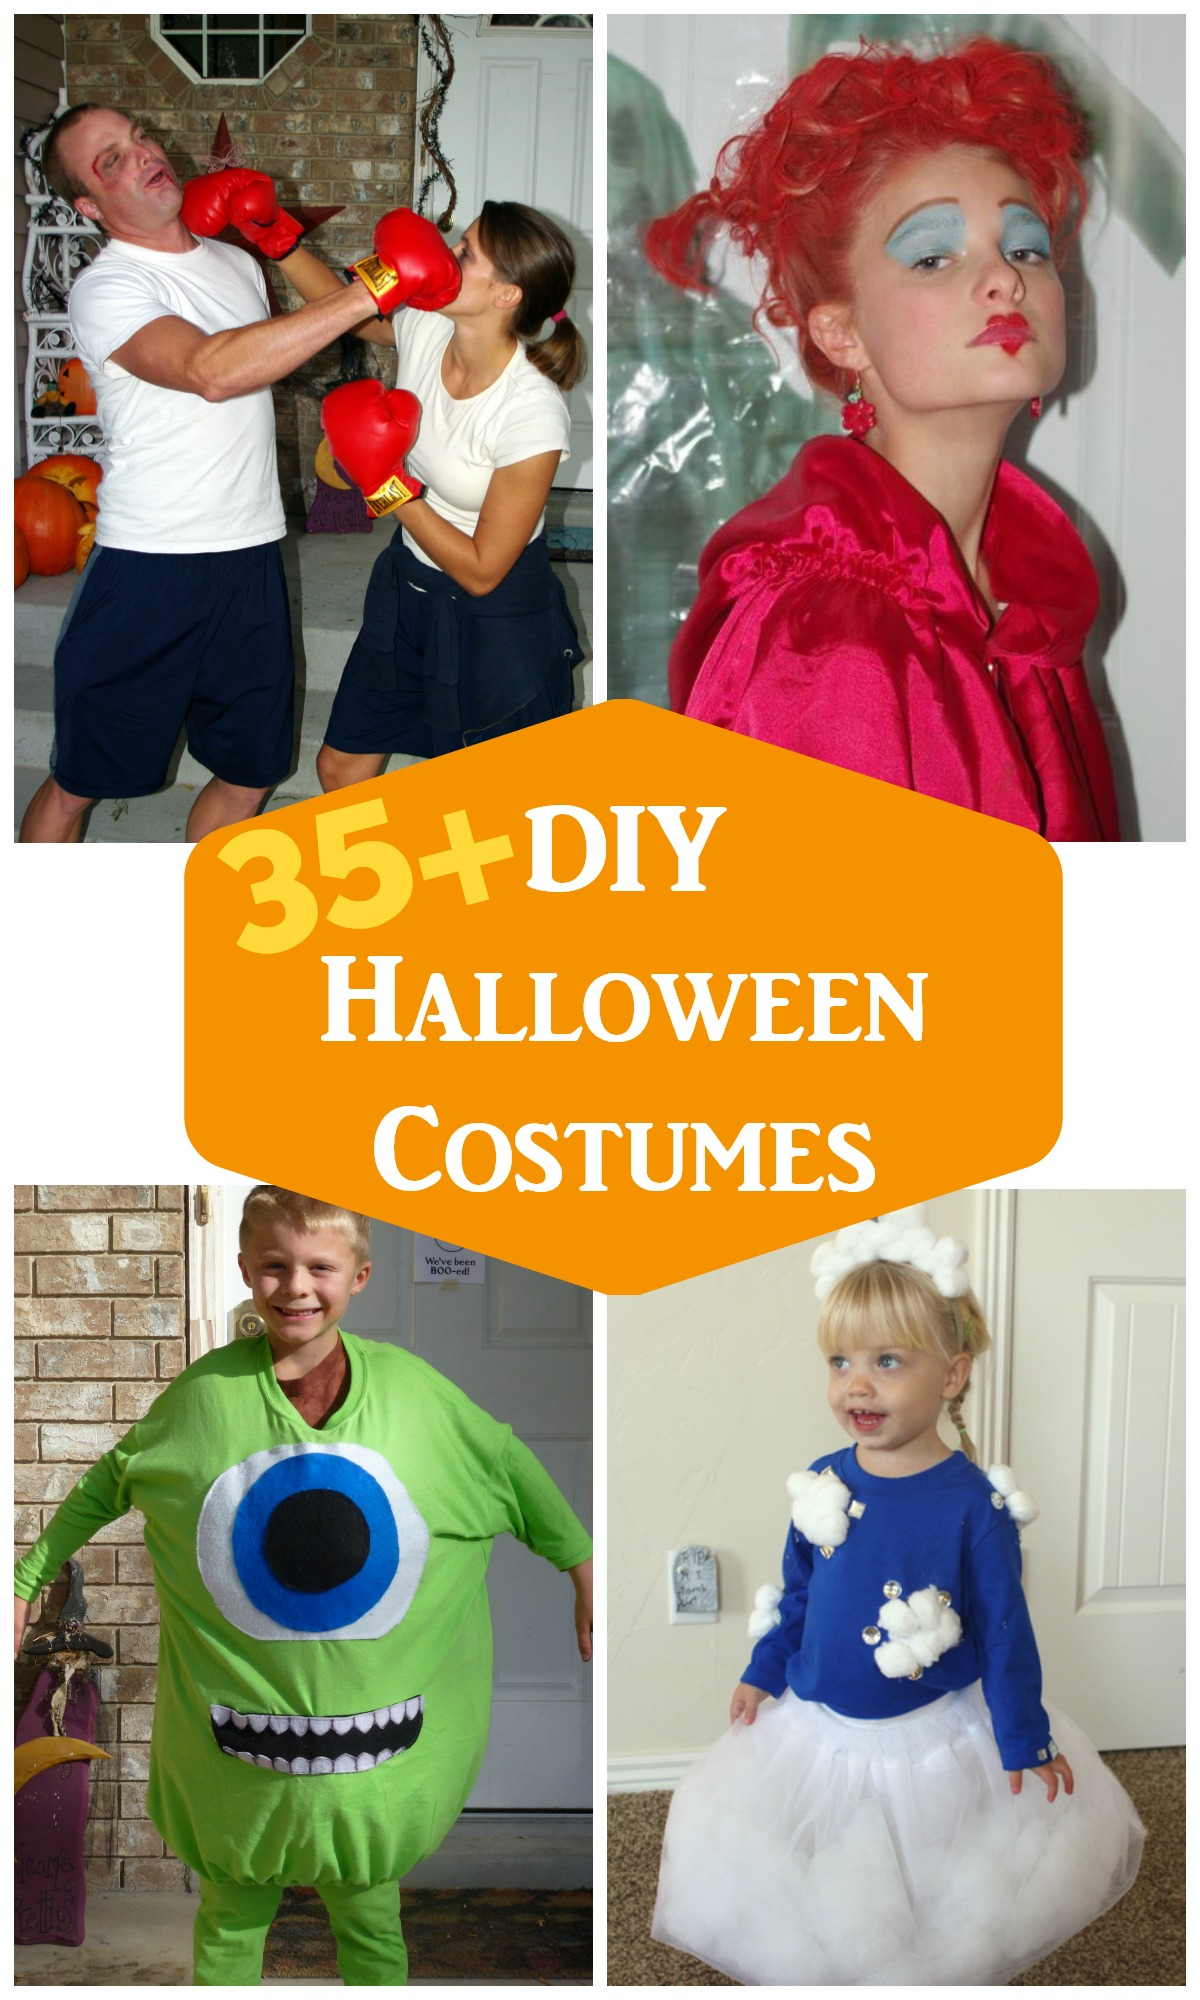 DIY Halloween Costumes & Easy Halloween Costumes 35+ ideas from eventstocelebrate.net